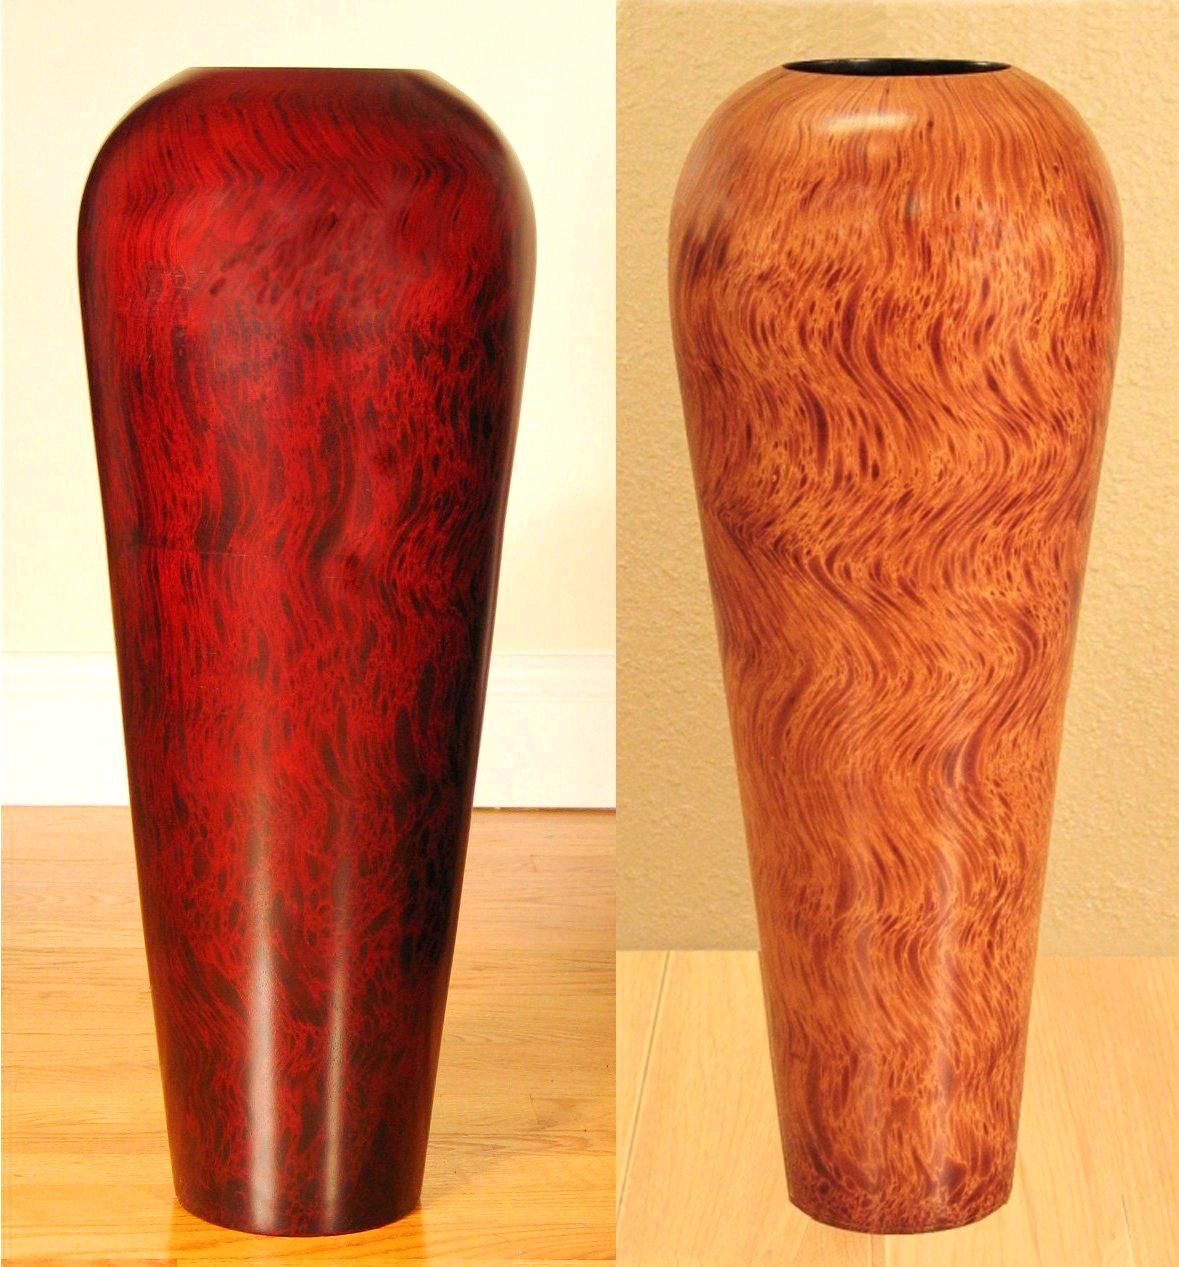 26 Amazing Large Red Vases for Sale 2021 free download large red vases for sale of large floor vase vases set of 3 for cheap with artificial flowers within large